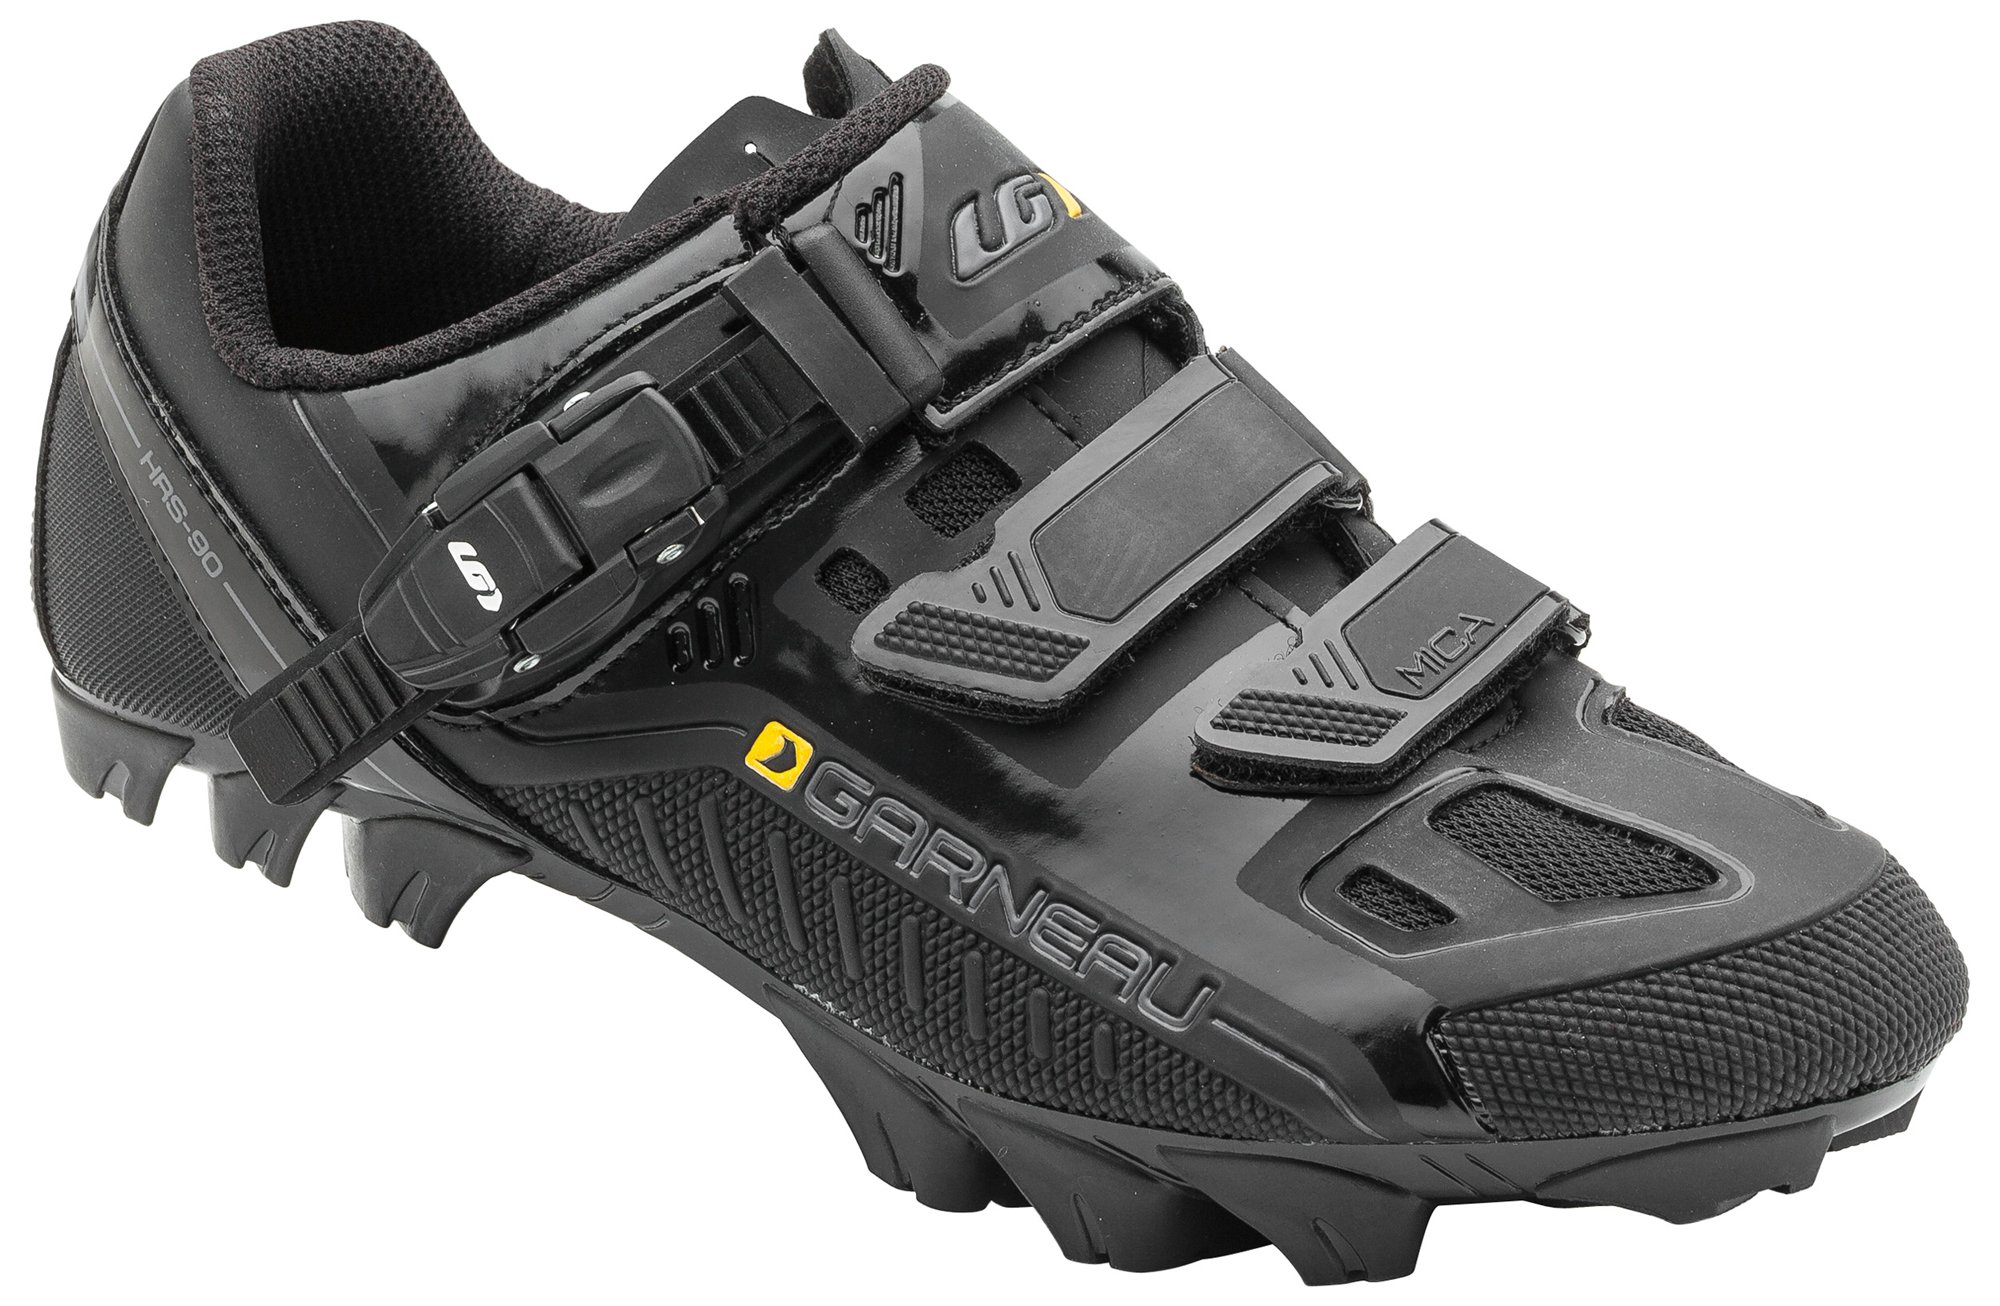 Louis Garneau - Women's Mica MTB Bike Shoes, Black, US (8), EU (39)